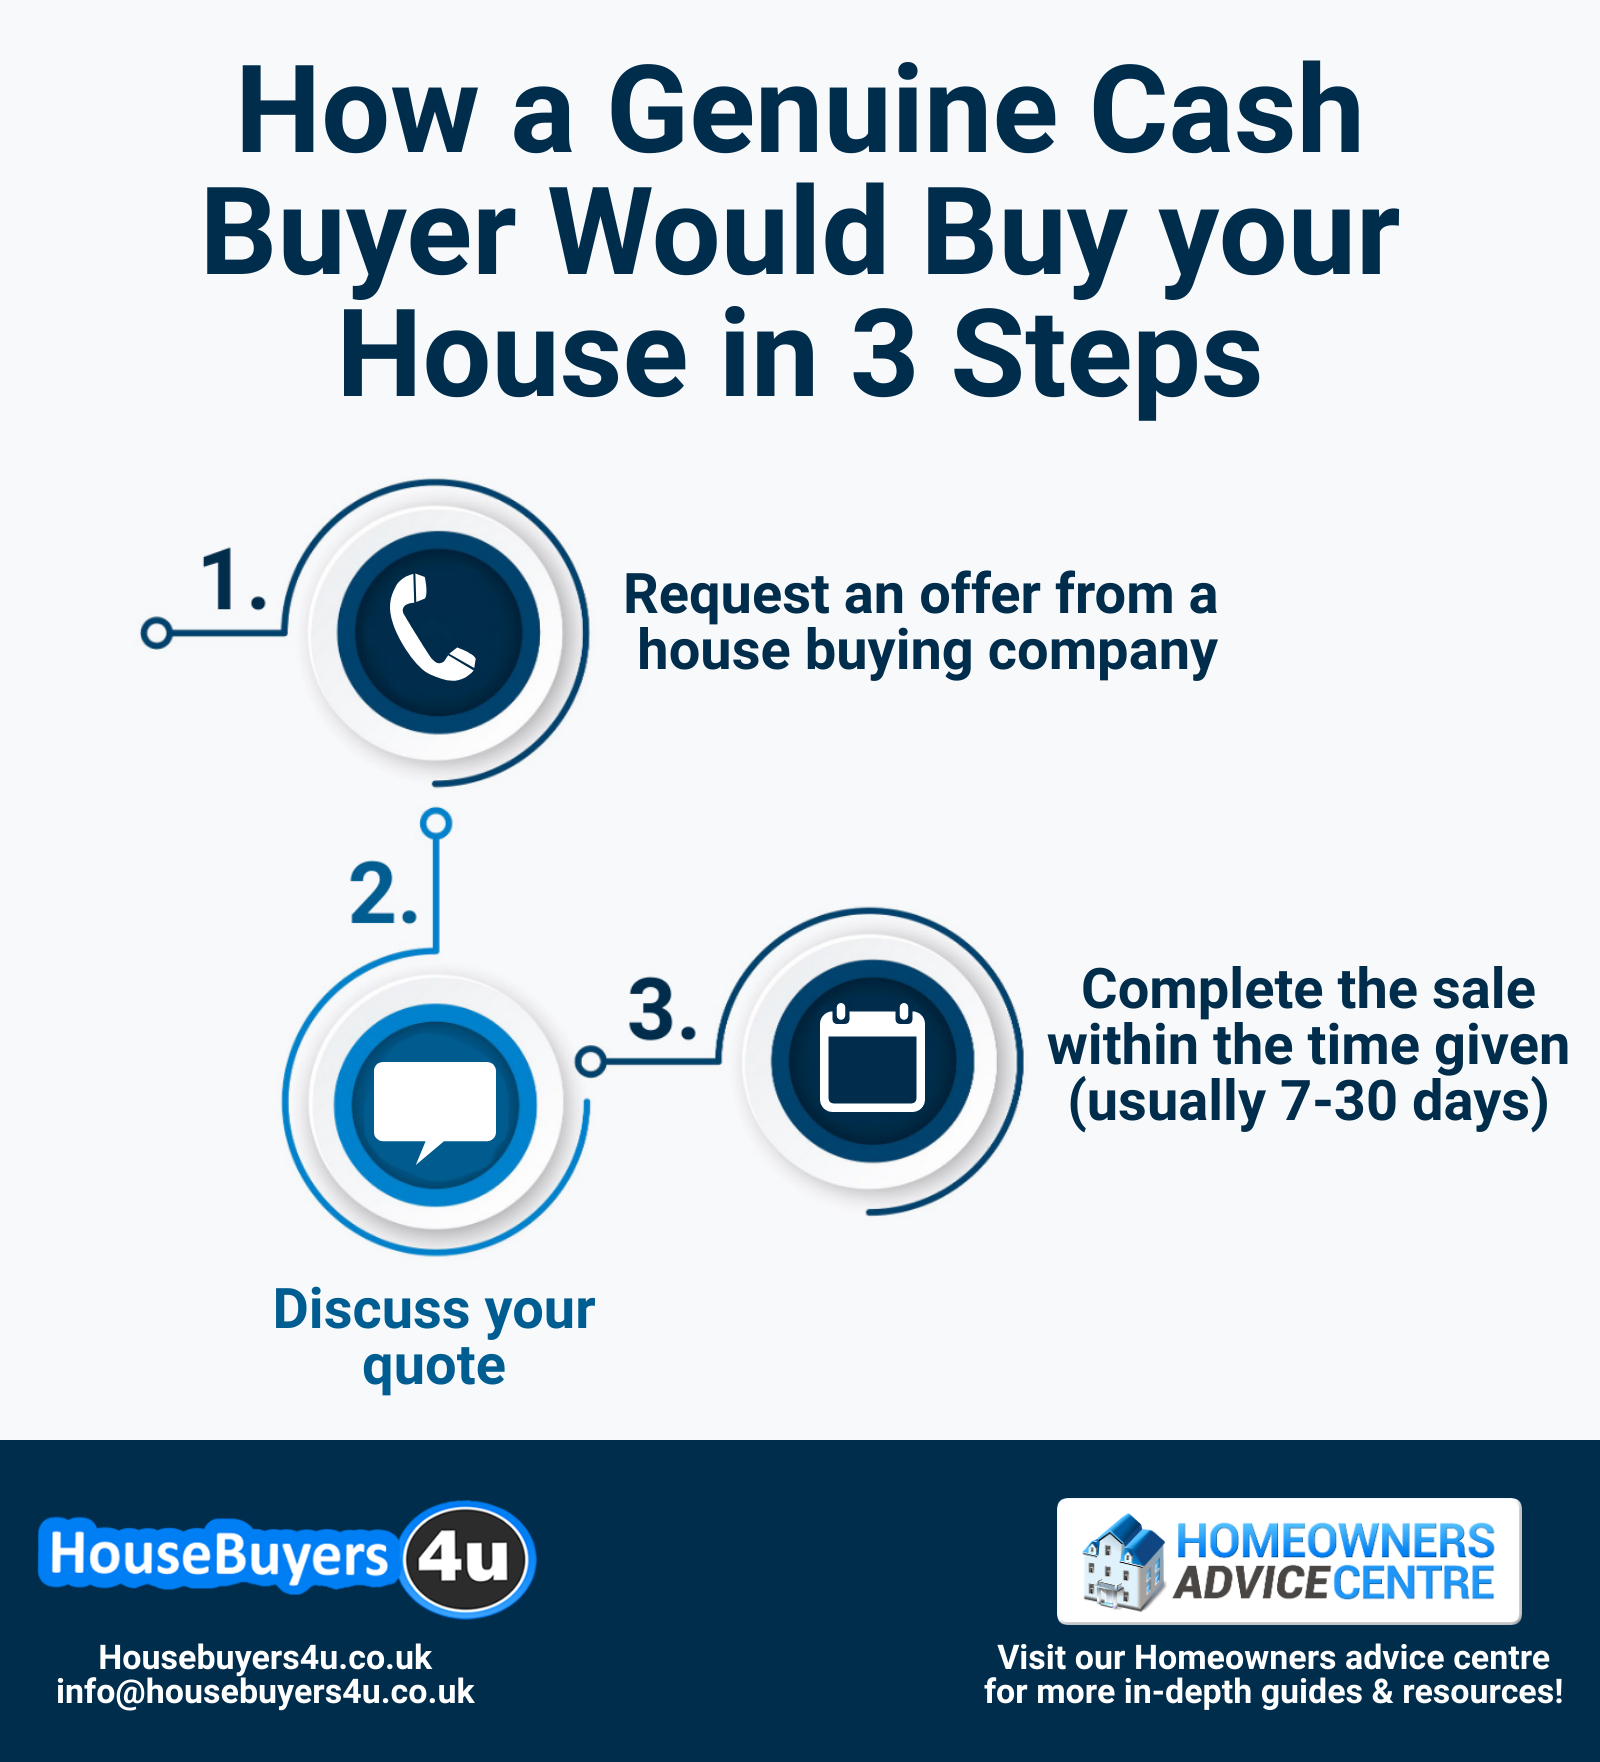 How a genuine cash buyer would buy your house in 3 steps